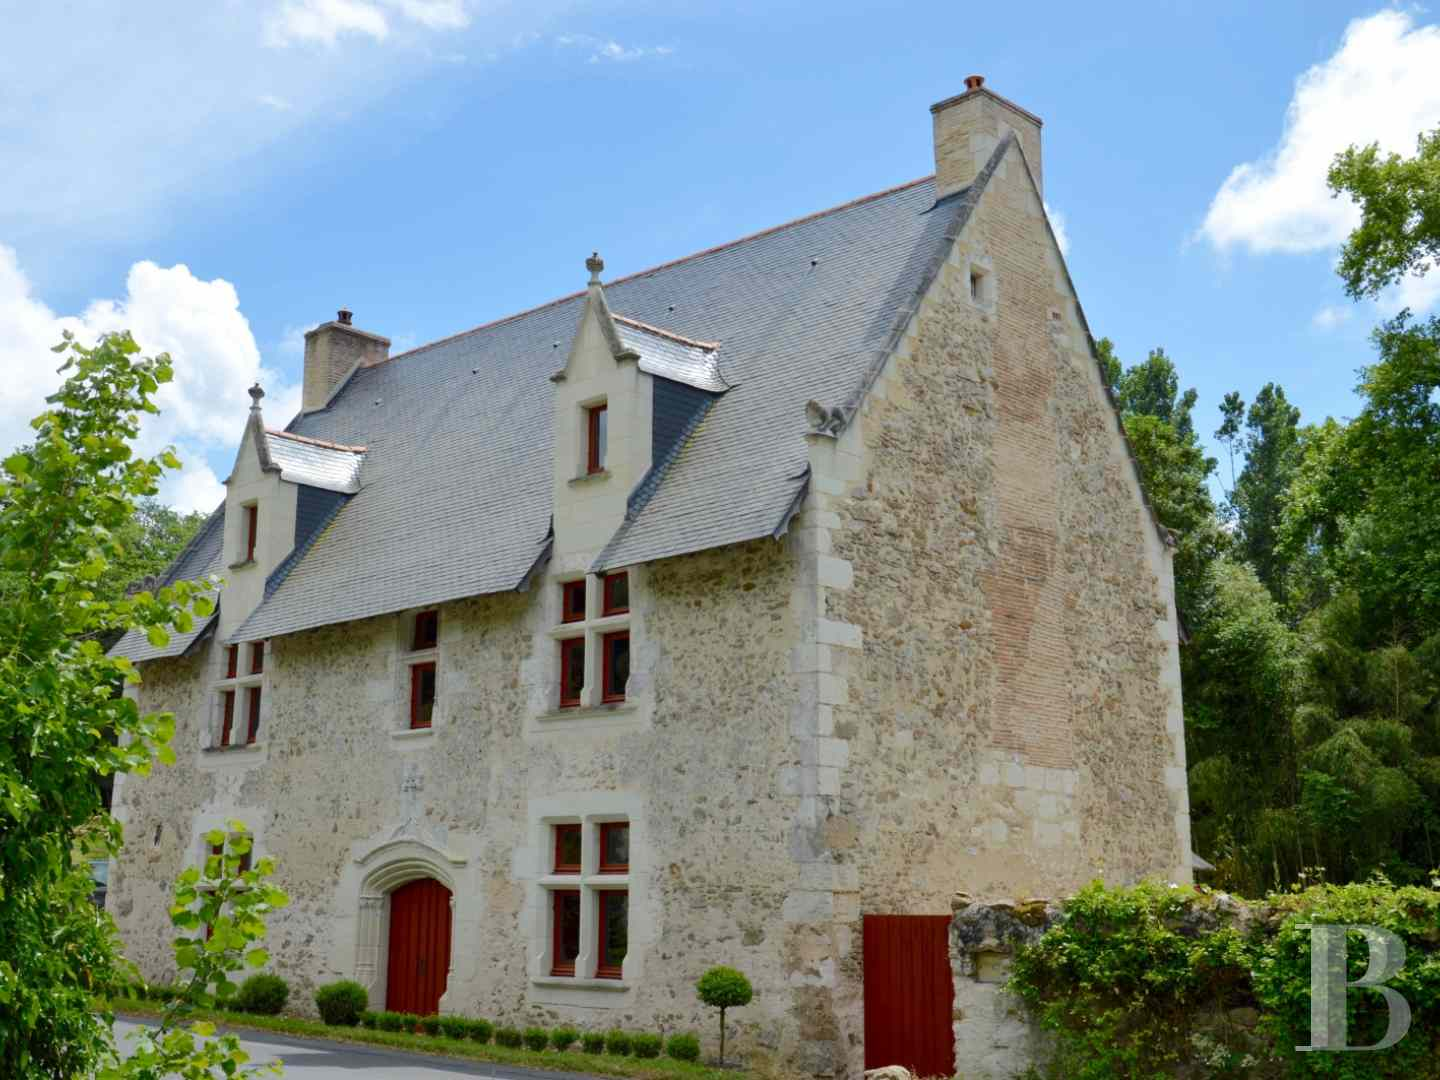 France mansions for sale pays de loire manors historic - 1 zoom